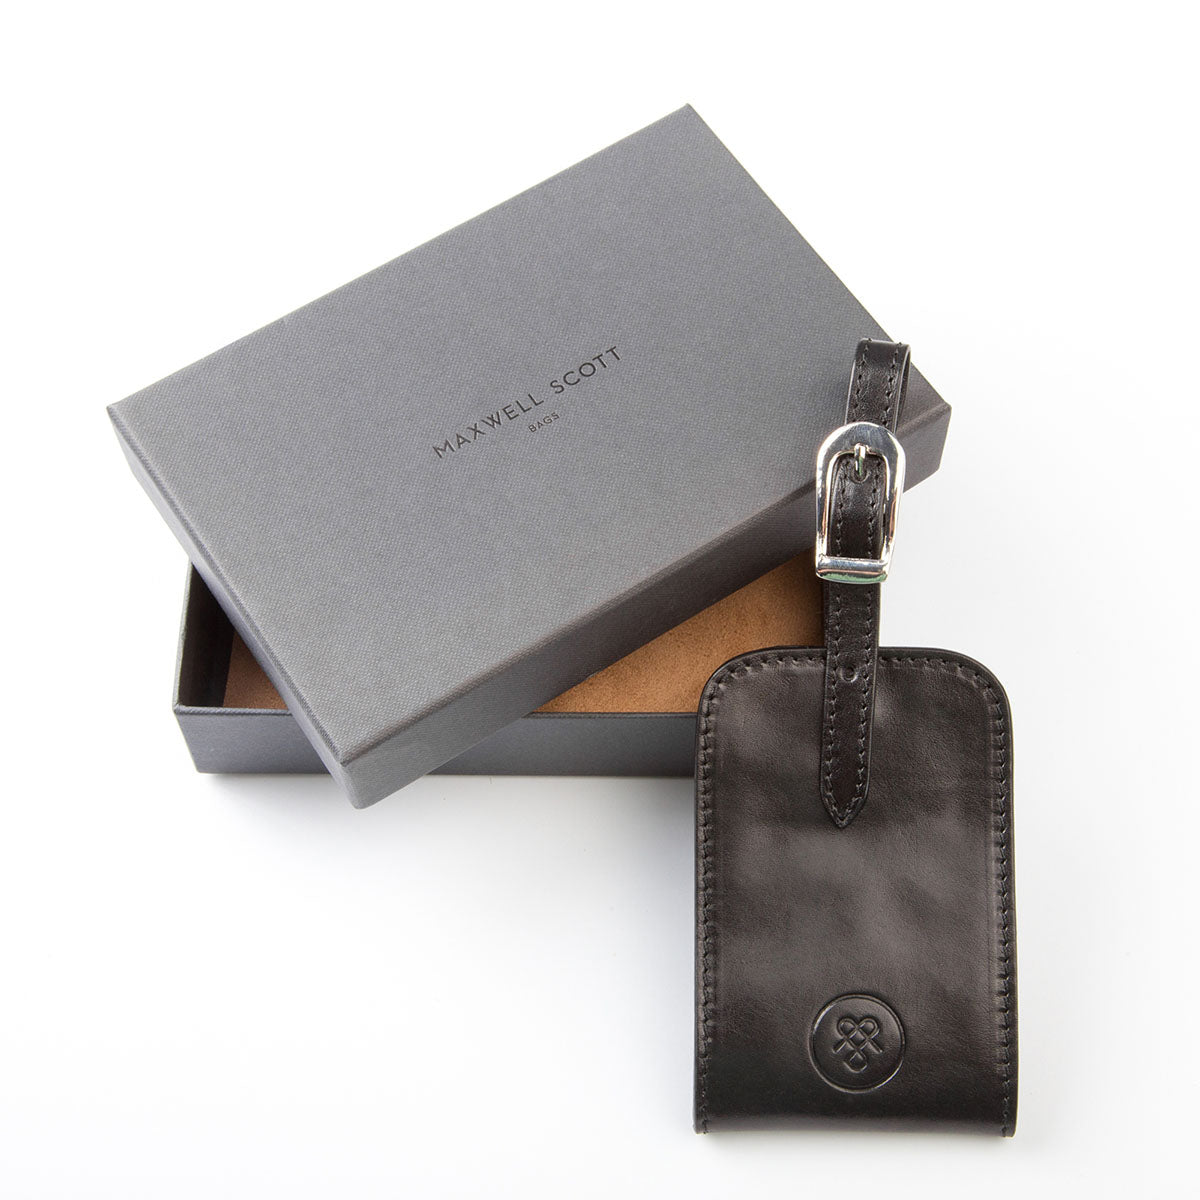 Image 4 of the 'Ledro' Black ID Luggage Tag